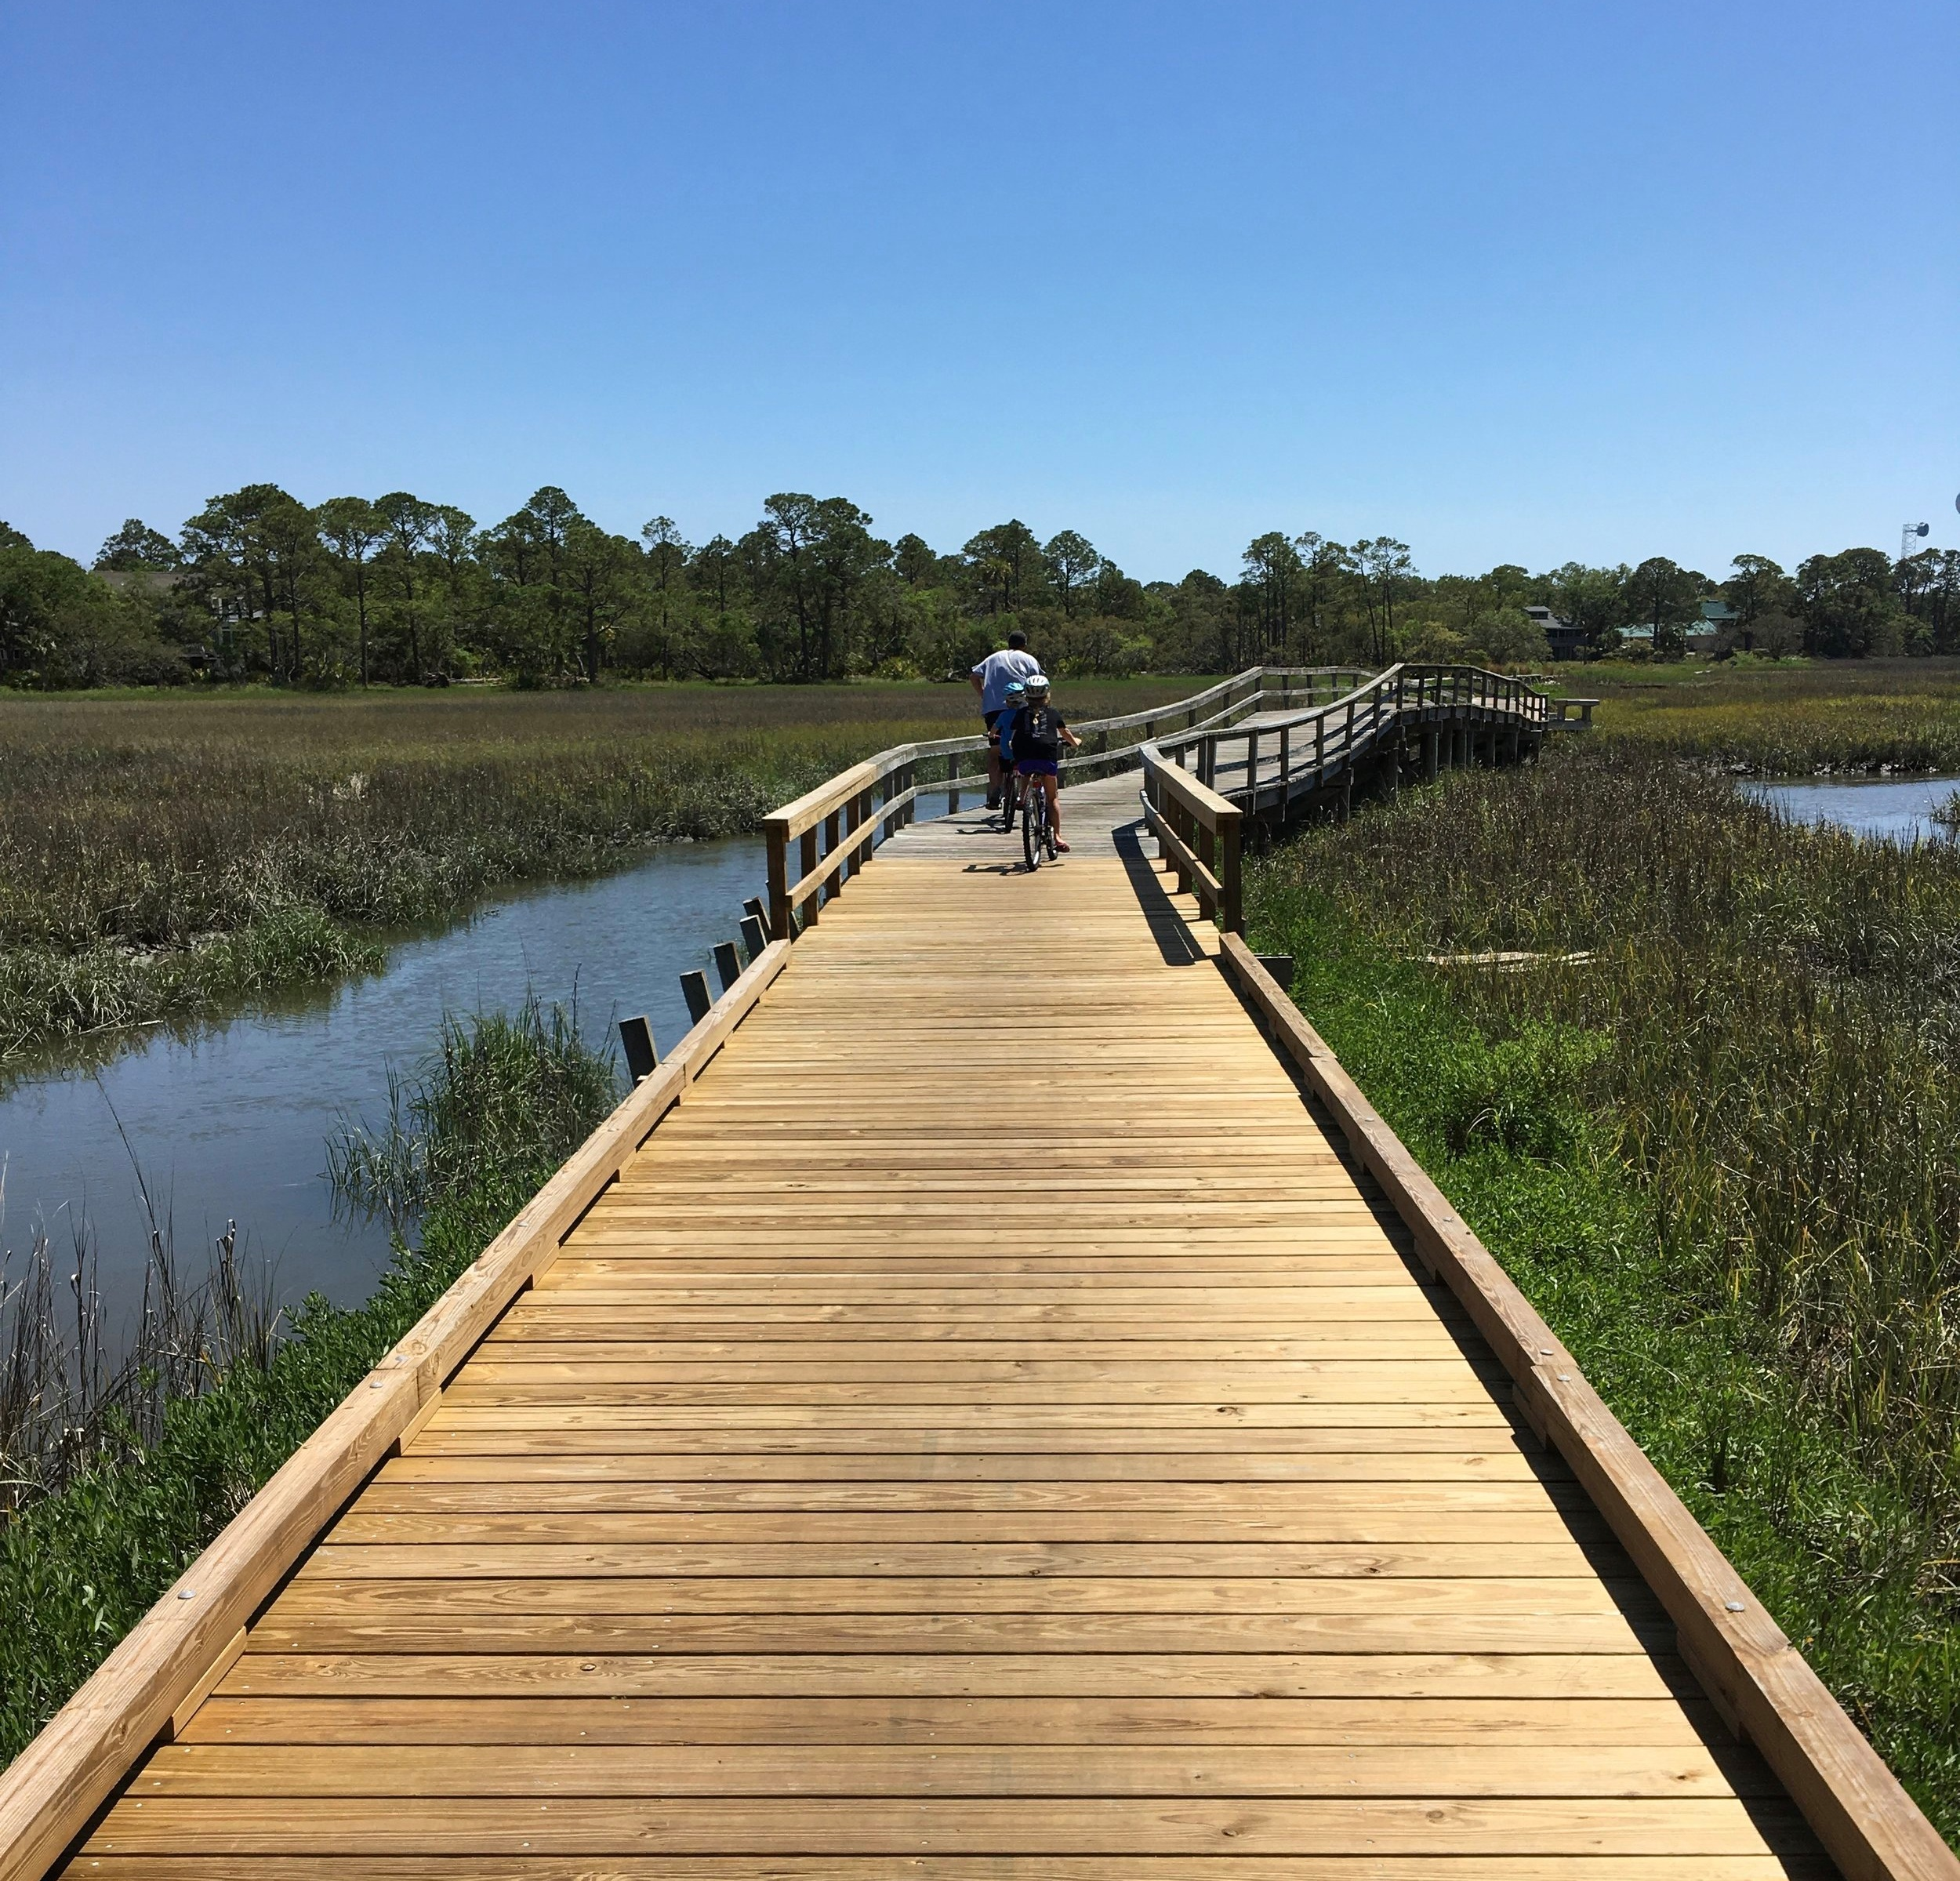 My family cycling at fripp island